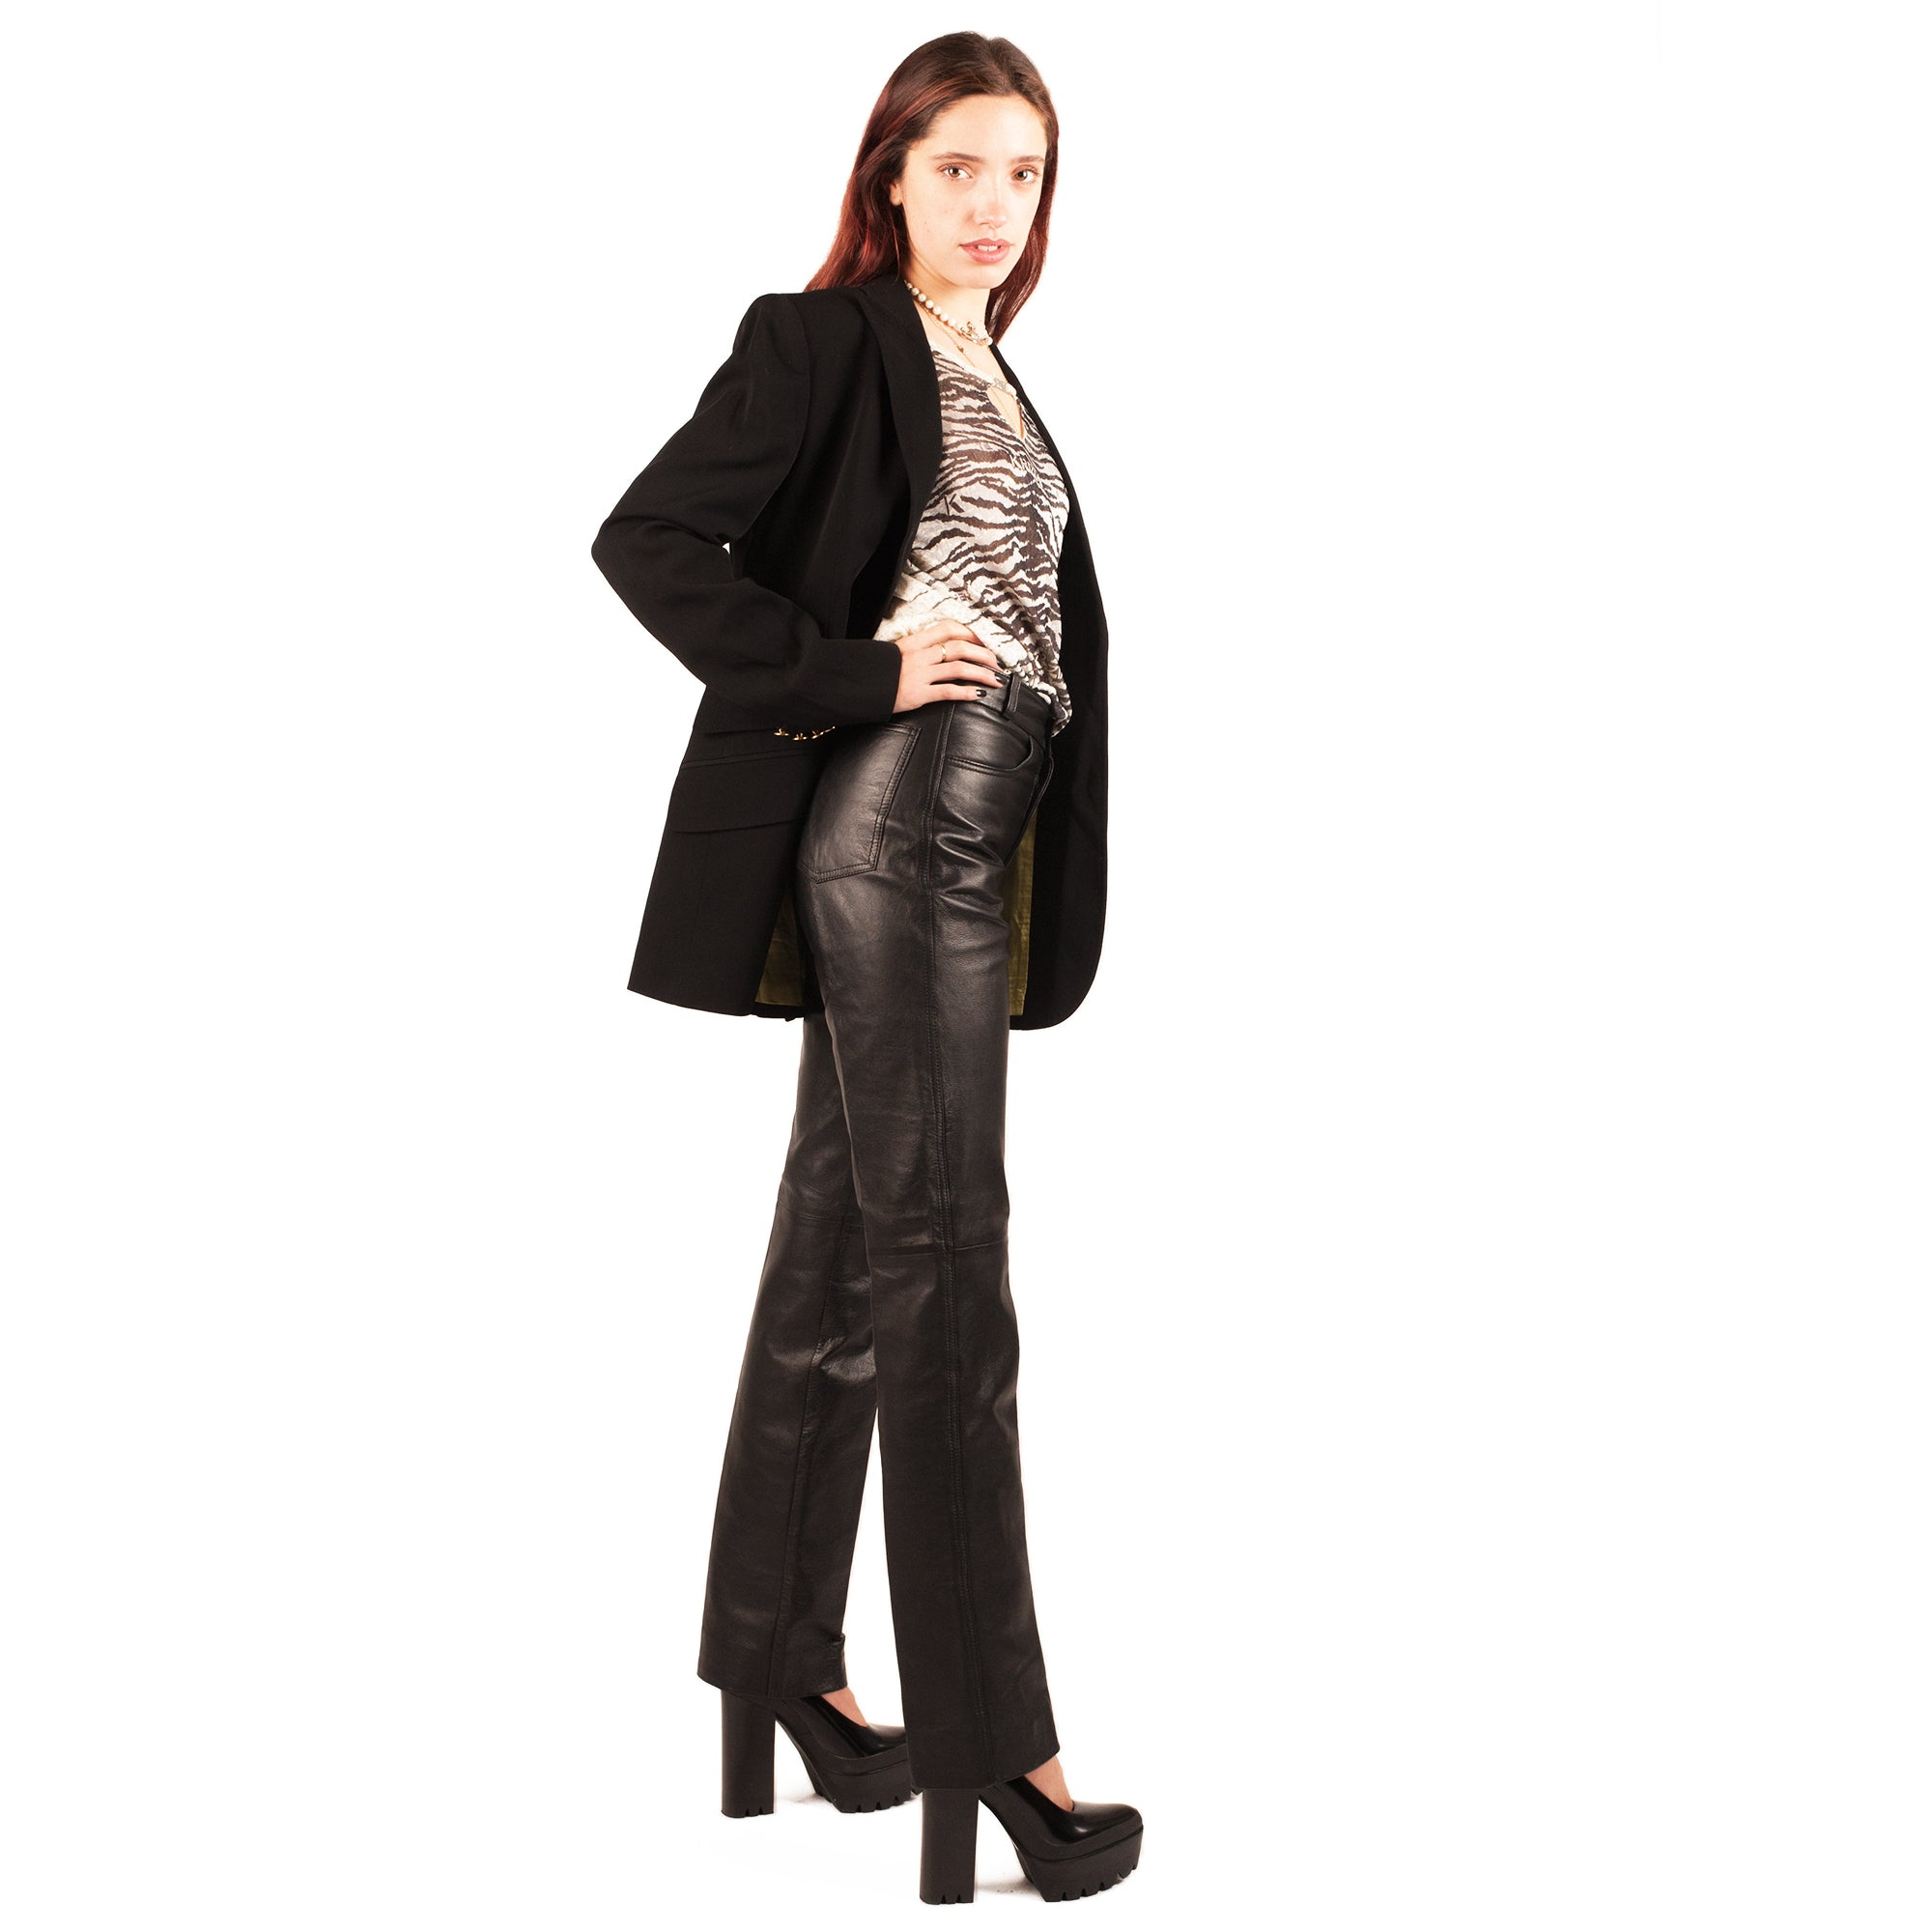 Dolce and Gabbana Blazer (Black) UK 6-8